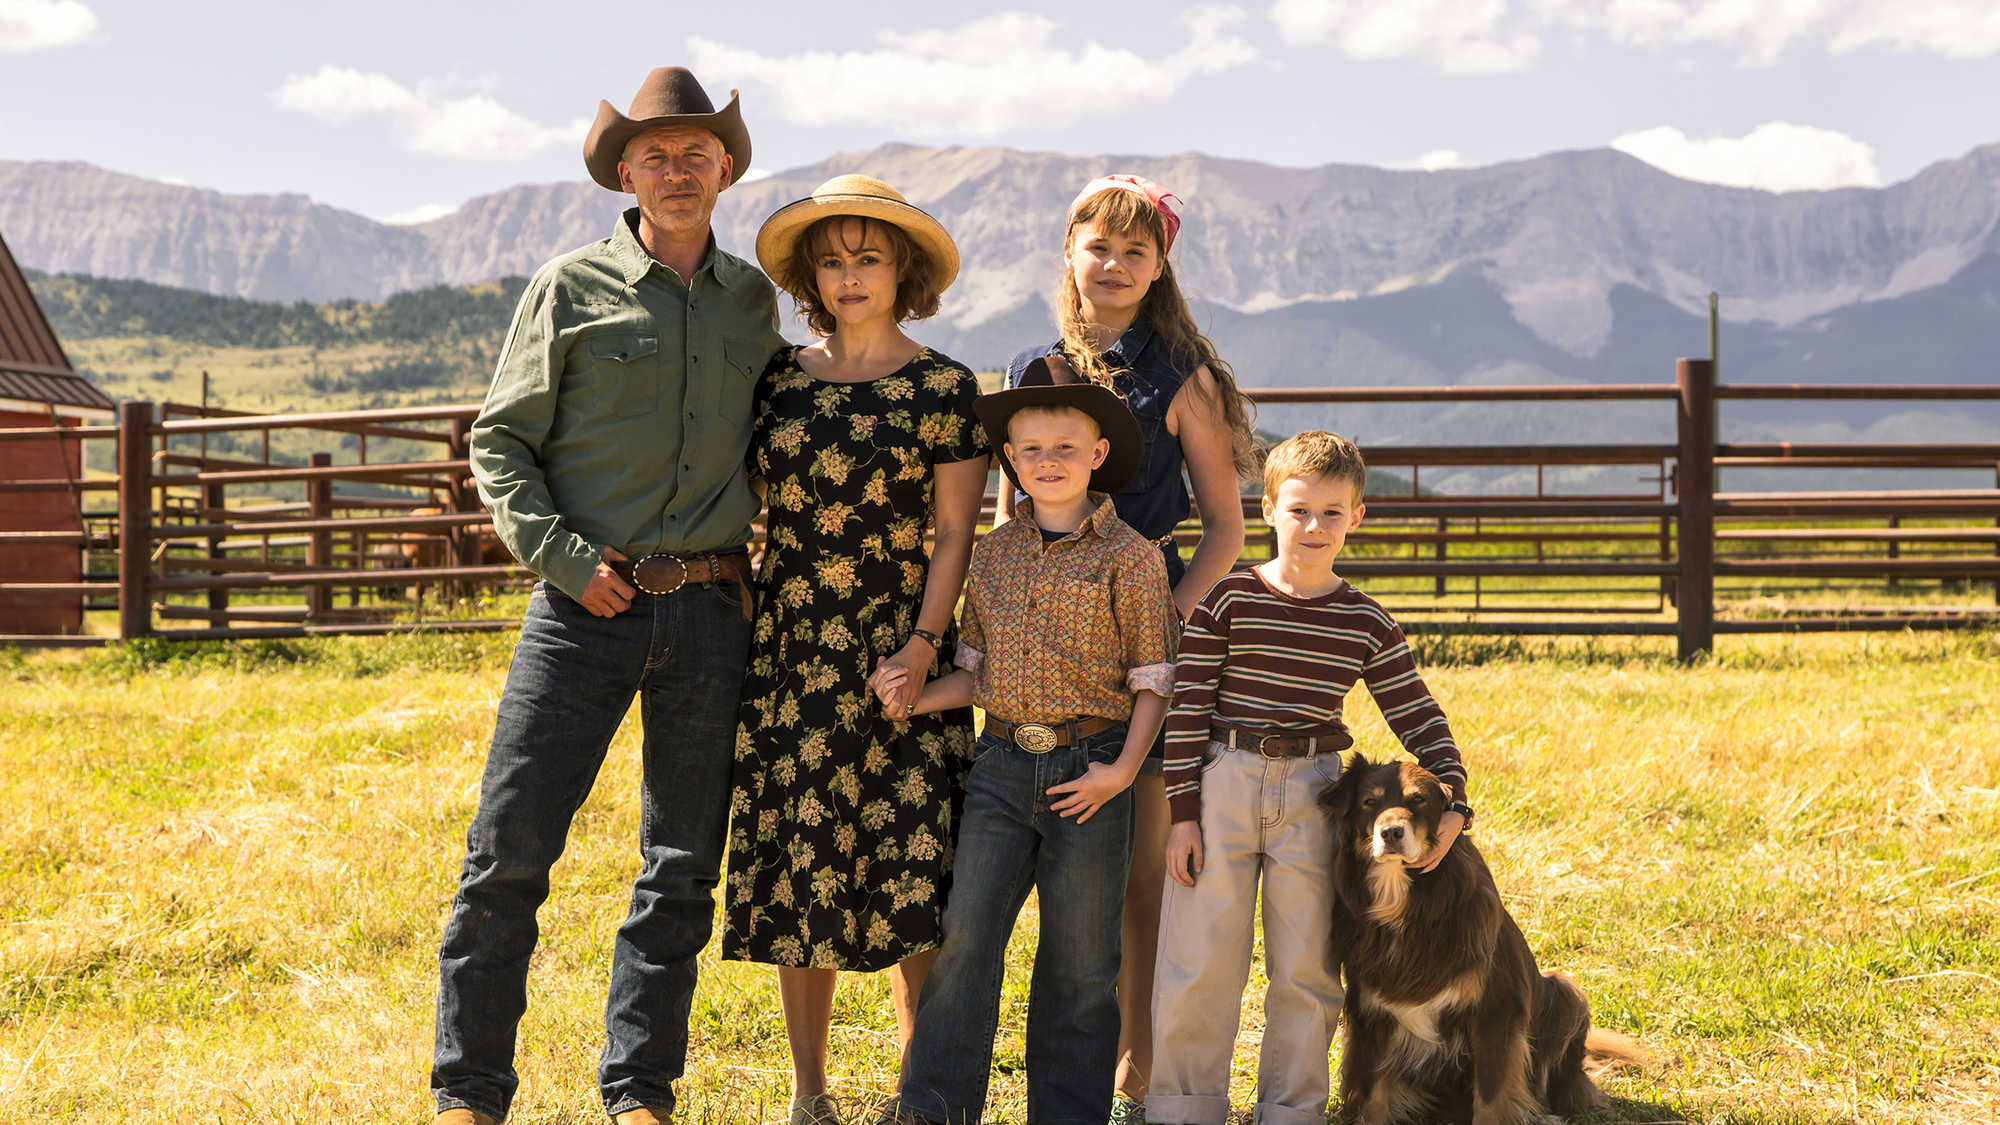 The Young and Prodigious T.S. Spivet 3D (image 2)